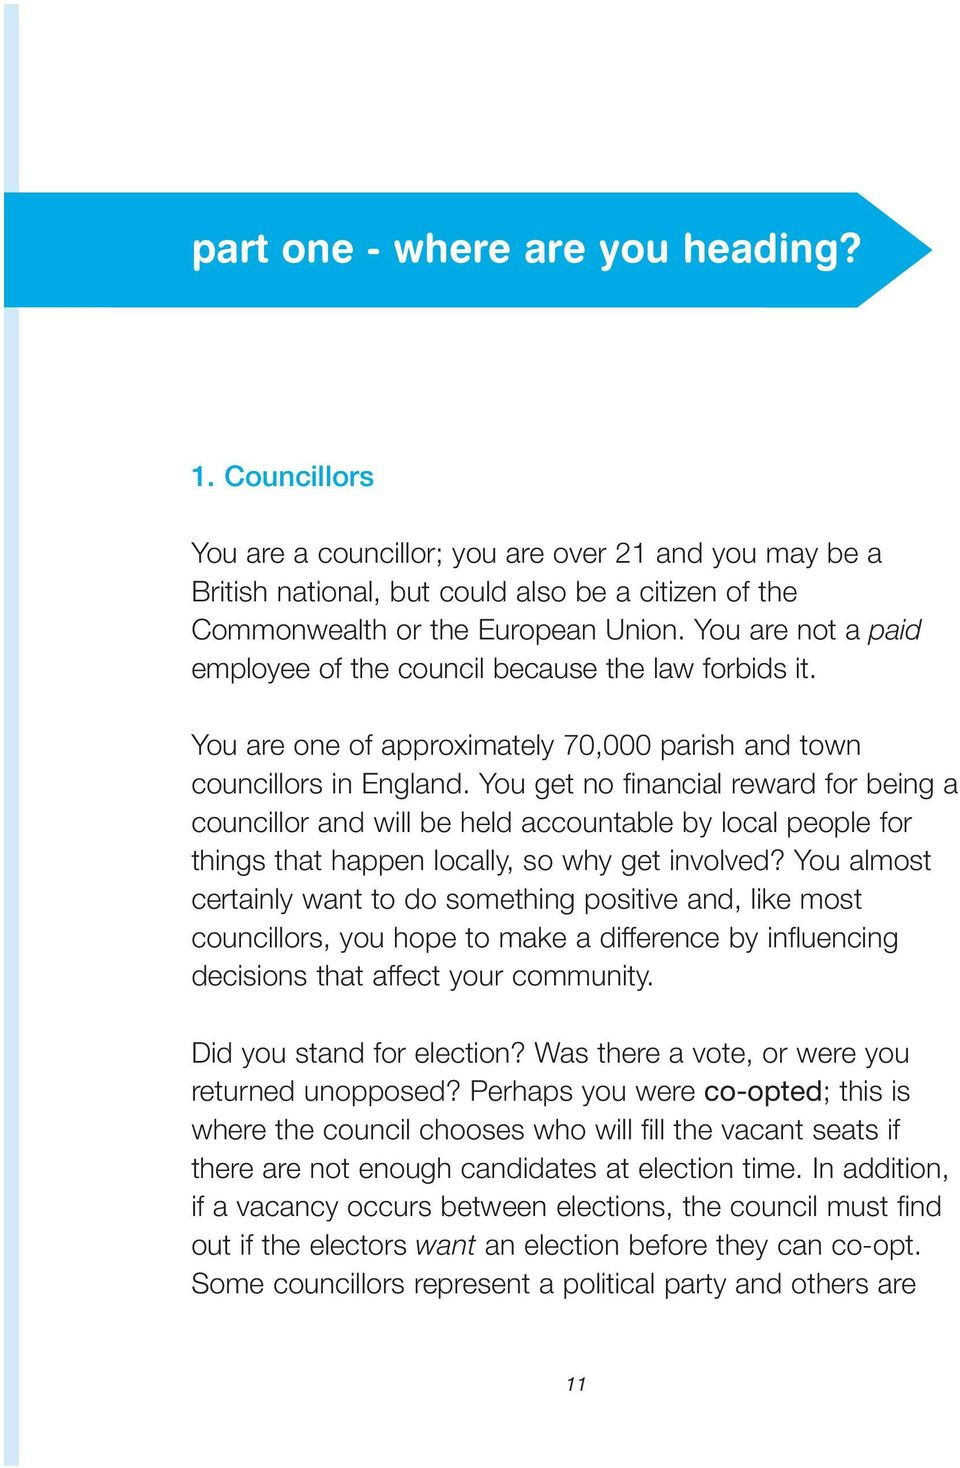 You get no financial reward for being a councillor and will be held accountable by local people for things that happen locally, so why get involved?